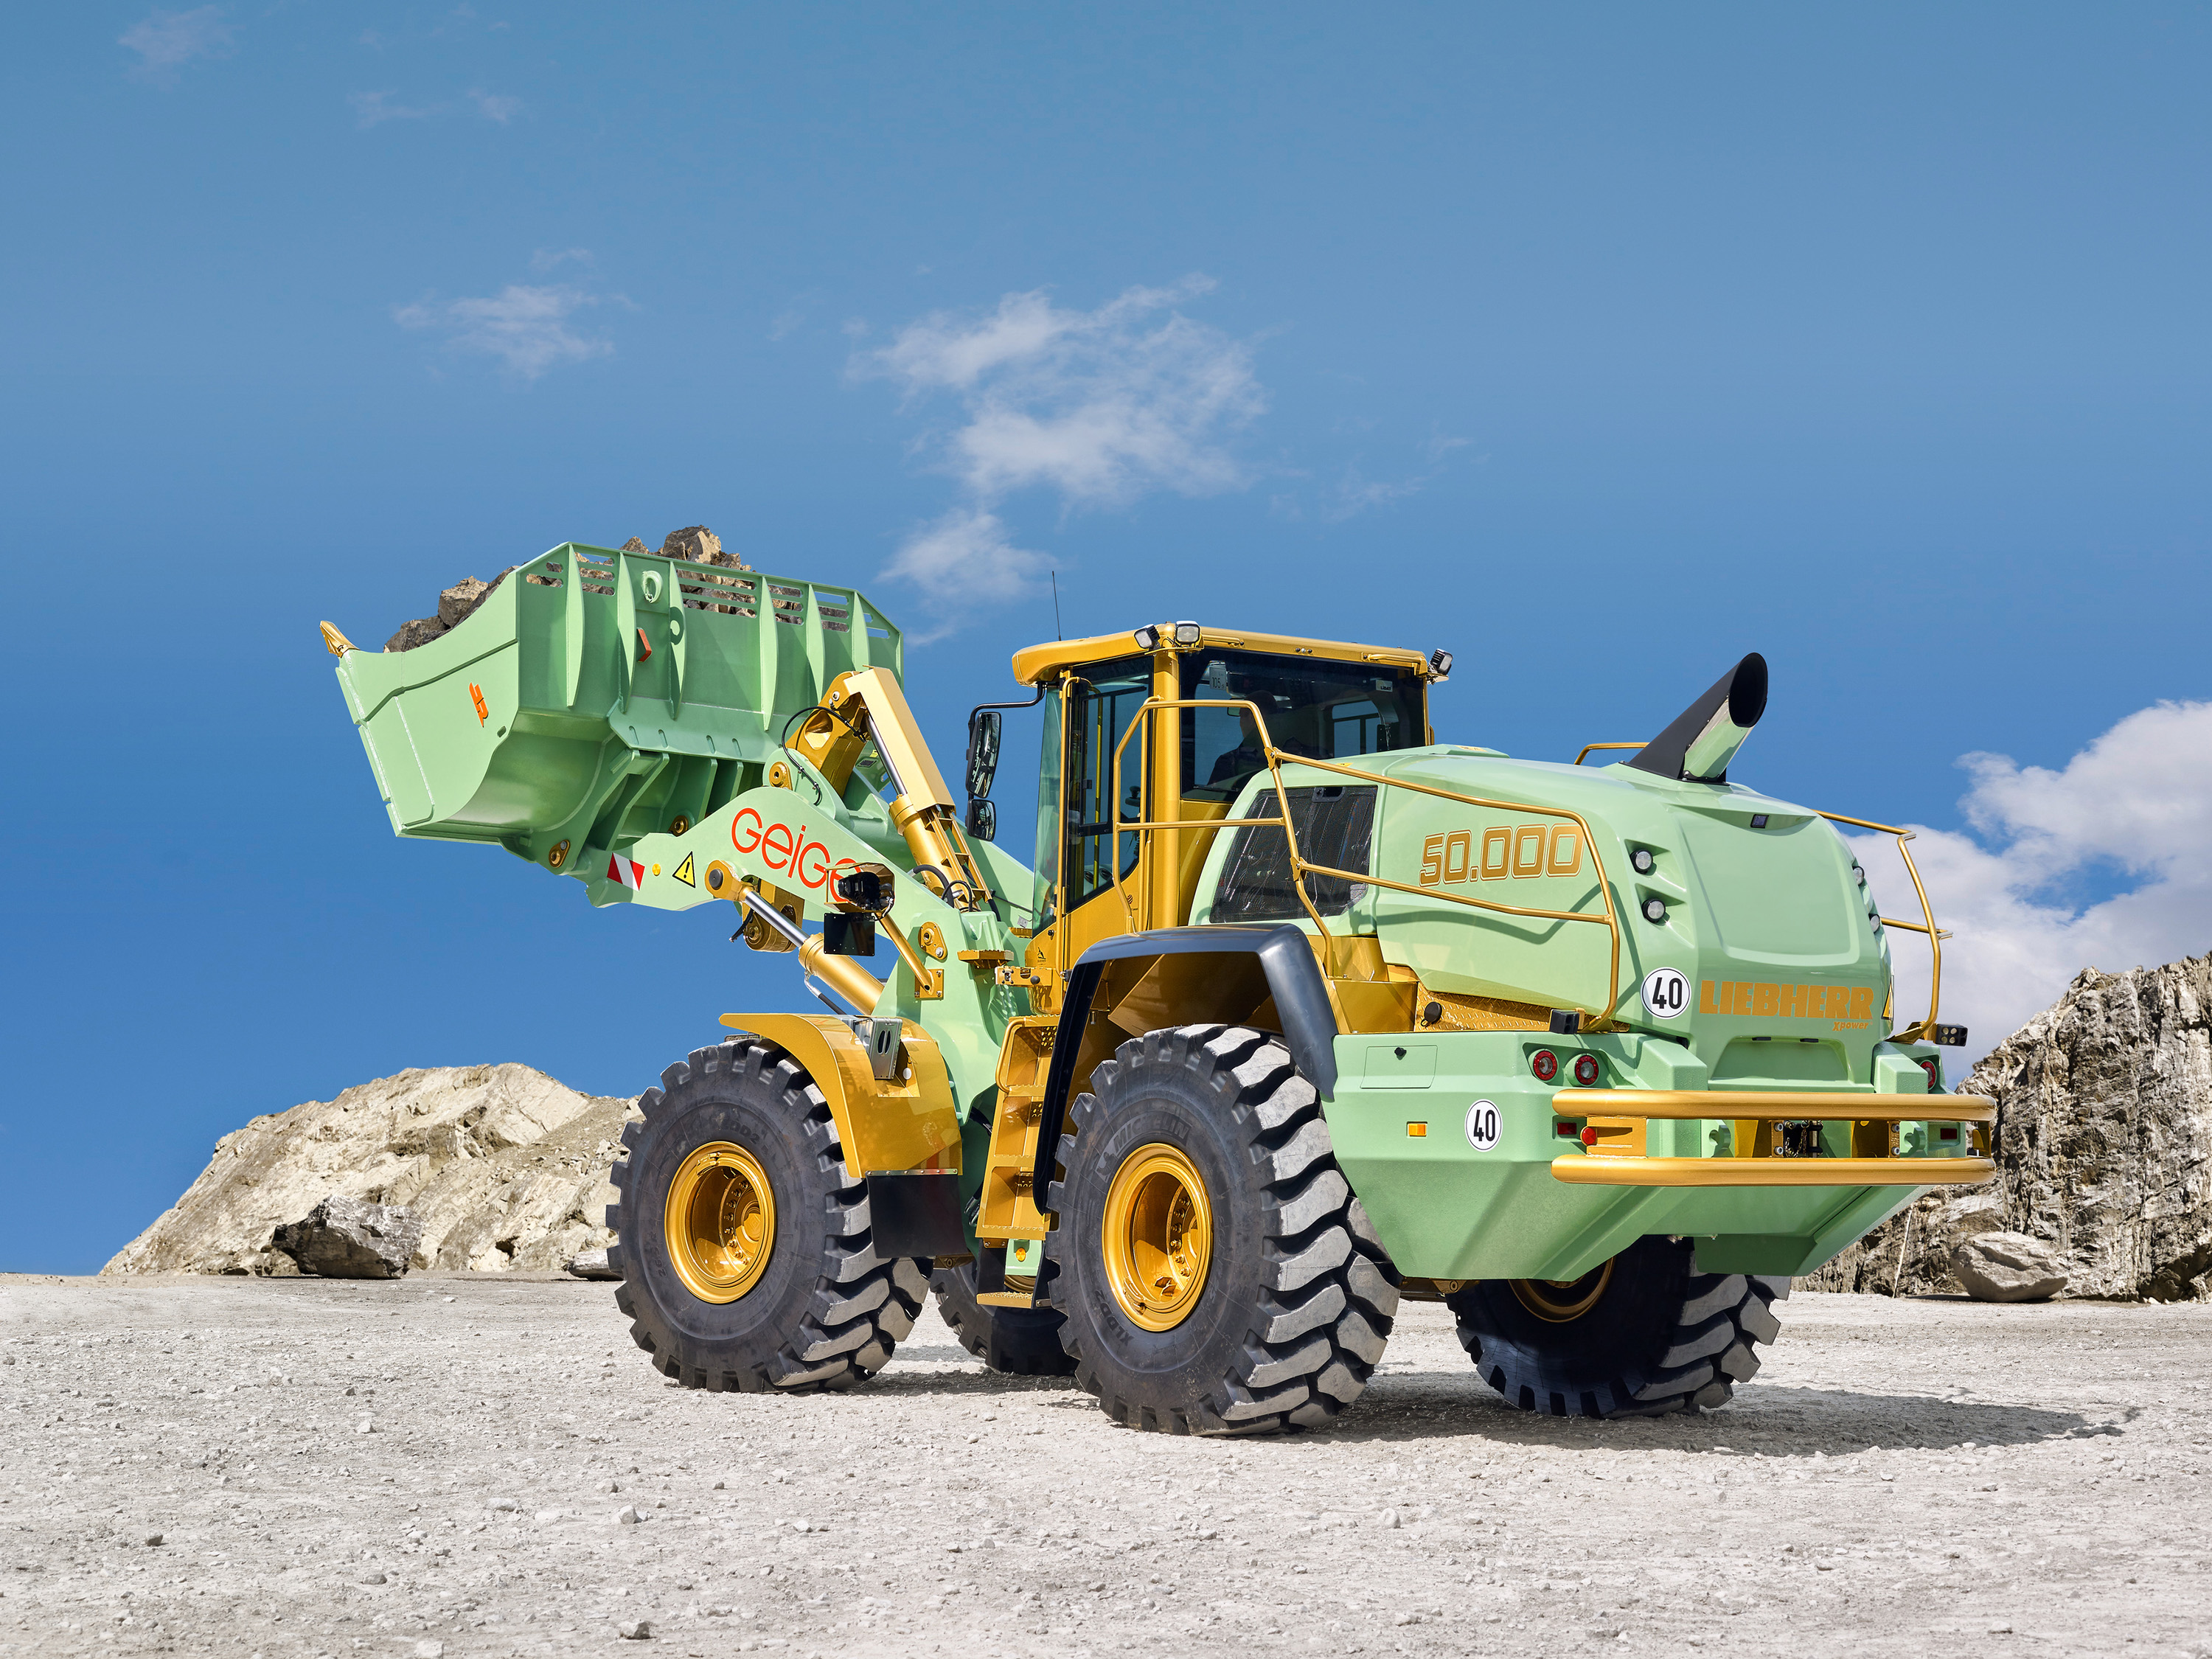 Geiger Unternehmensgruppe uses the 50,000th Liebherr wheel loader for transportation purposes at a quarry in Wertach, Southern Germany.